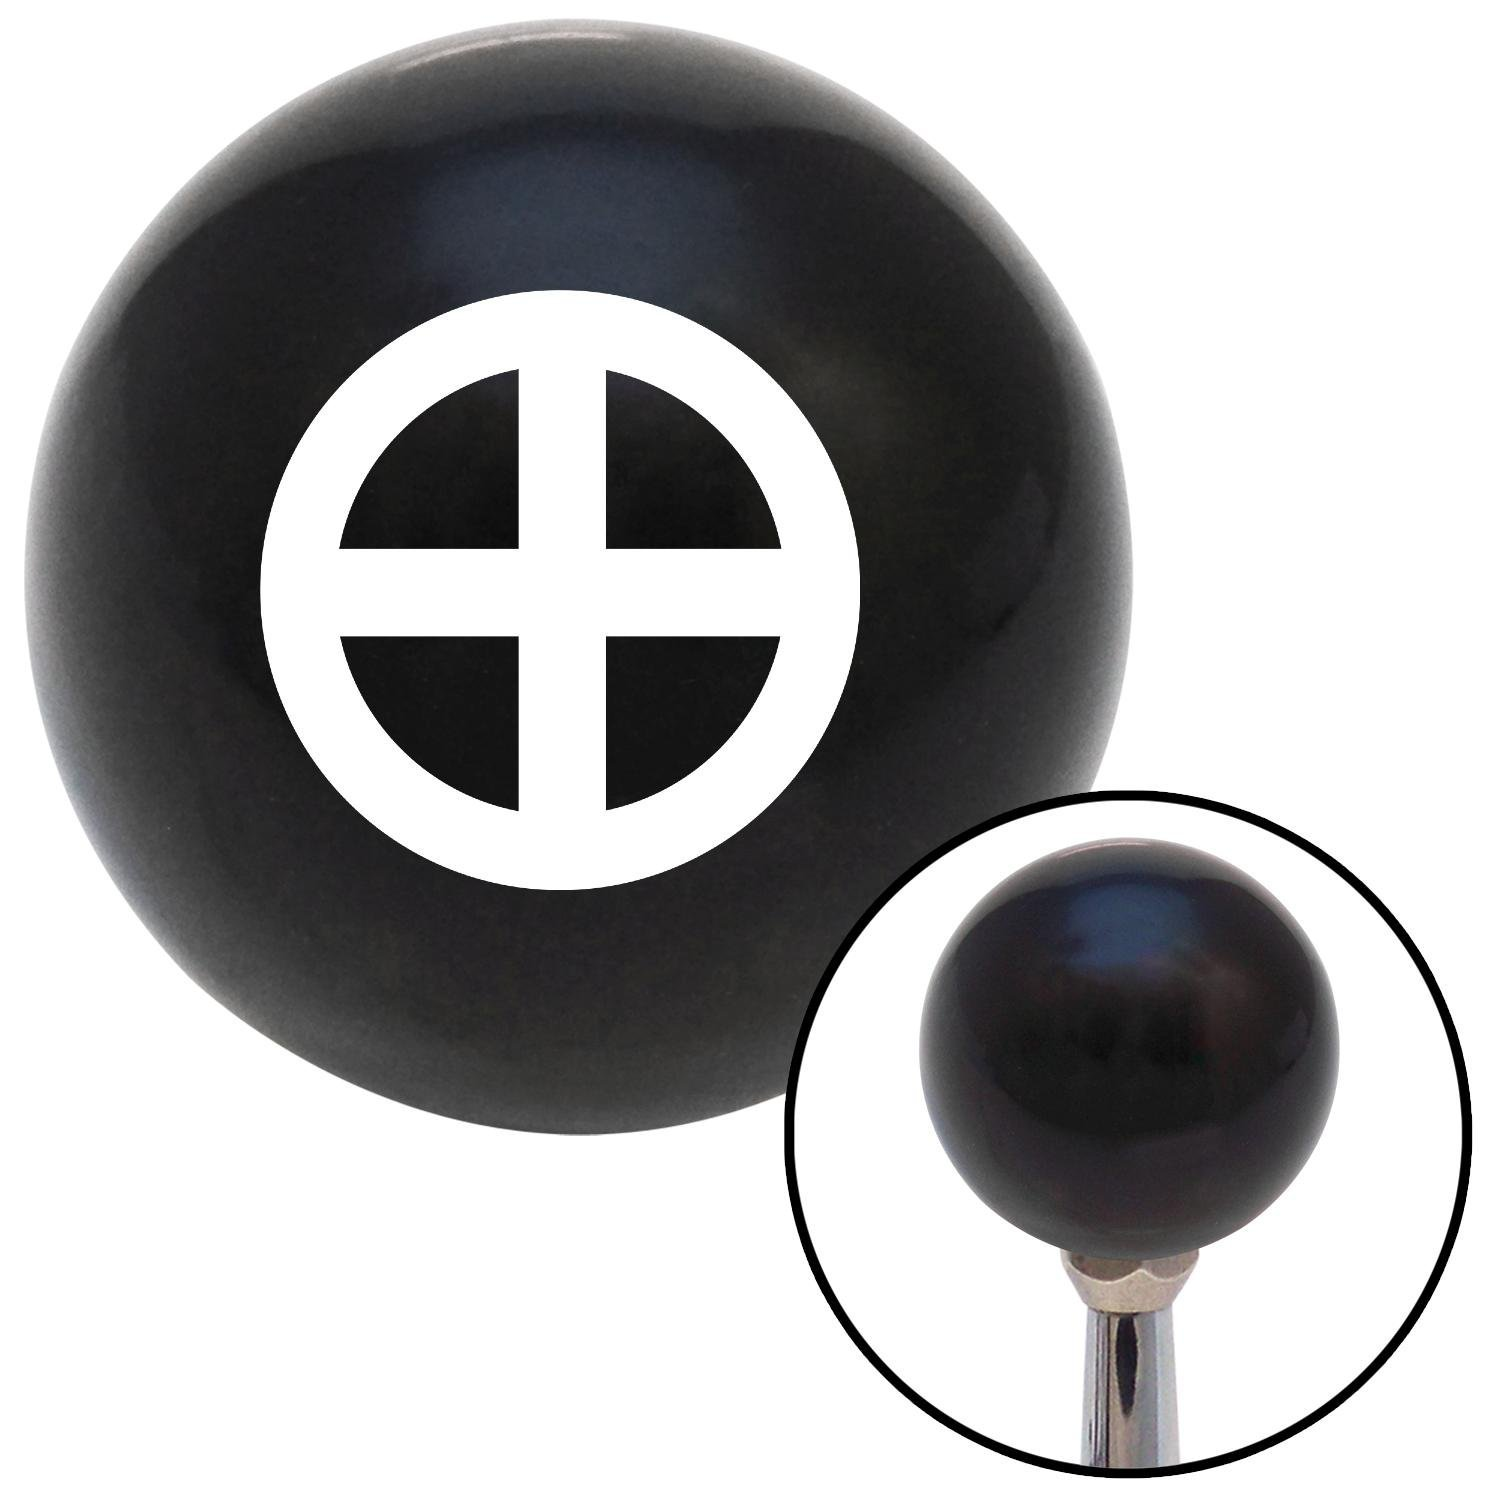 White Sun Cross American Shifter 108098 Black Shift Knob with M16 x 1.5 Insert